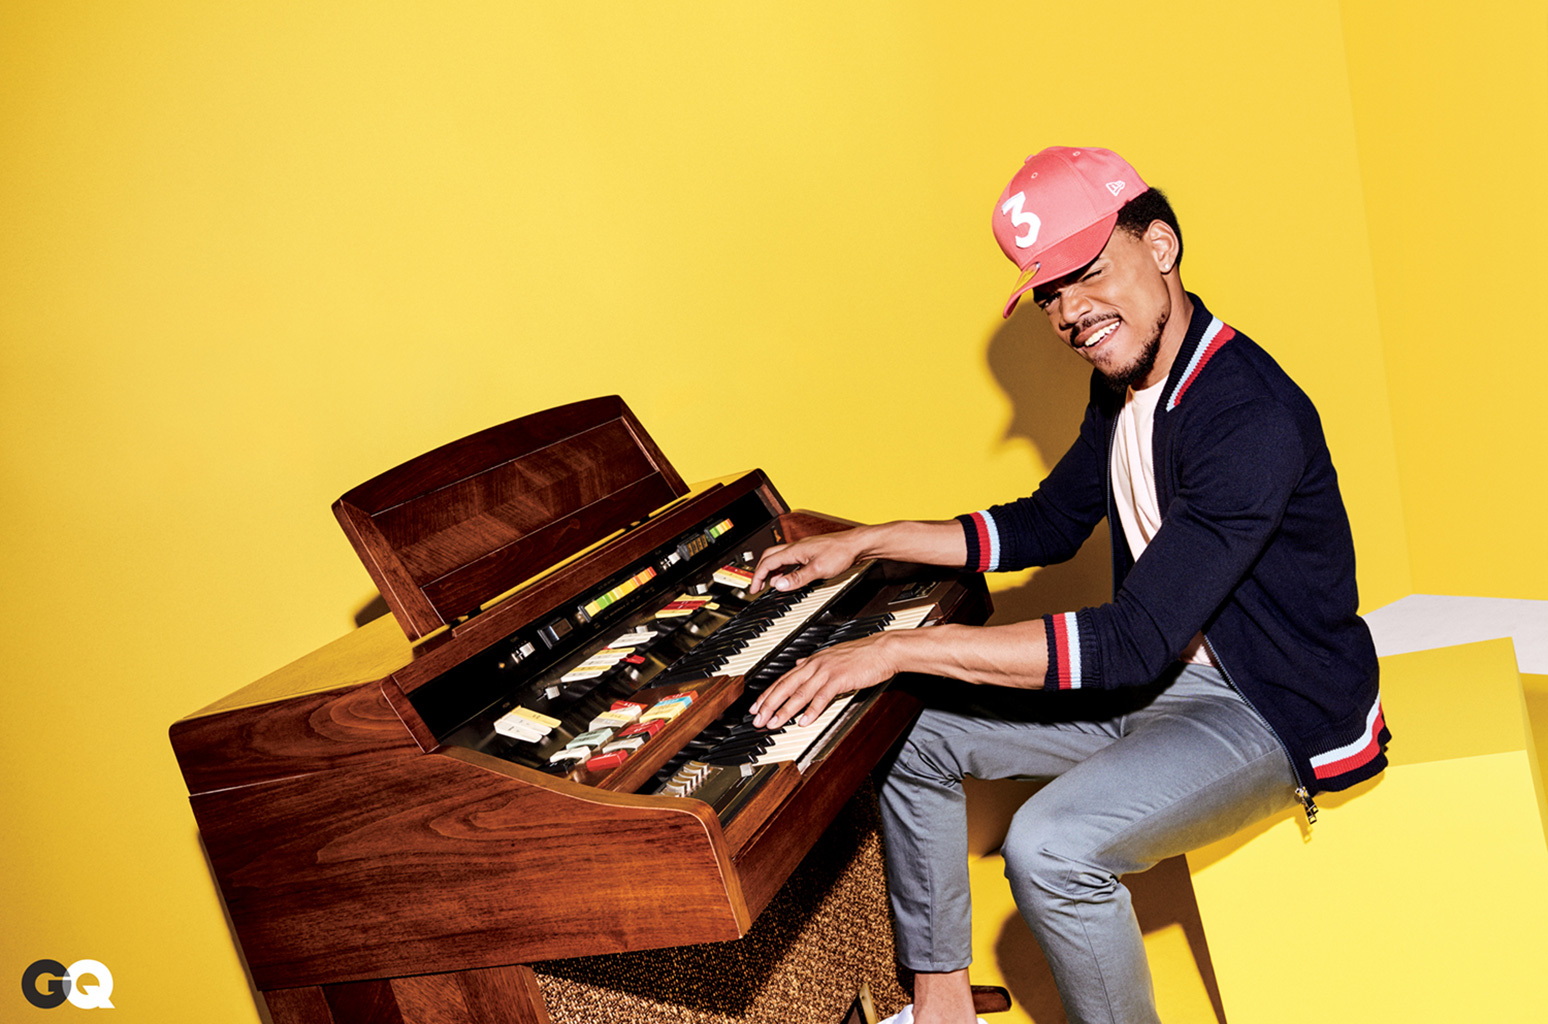 Chance The Rapper's 'GQ' Interview: Talks Kanye West & Donald Trump Presidency | Billboard